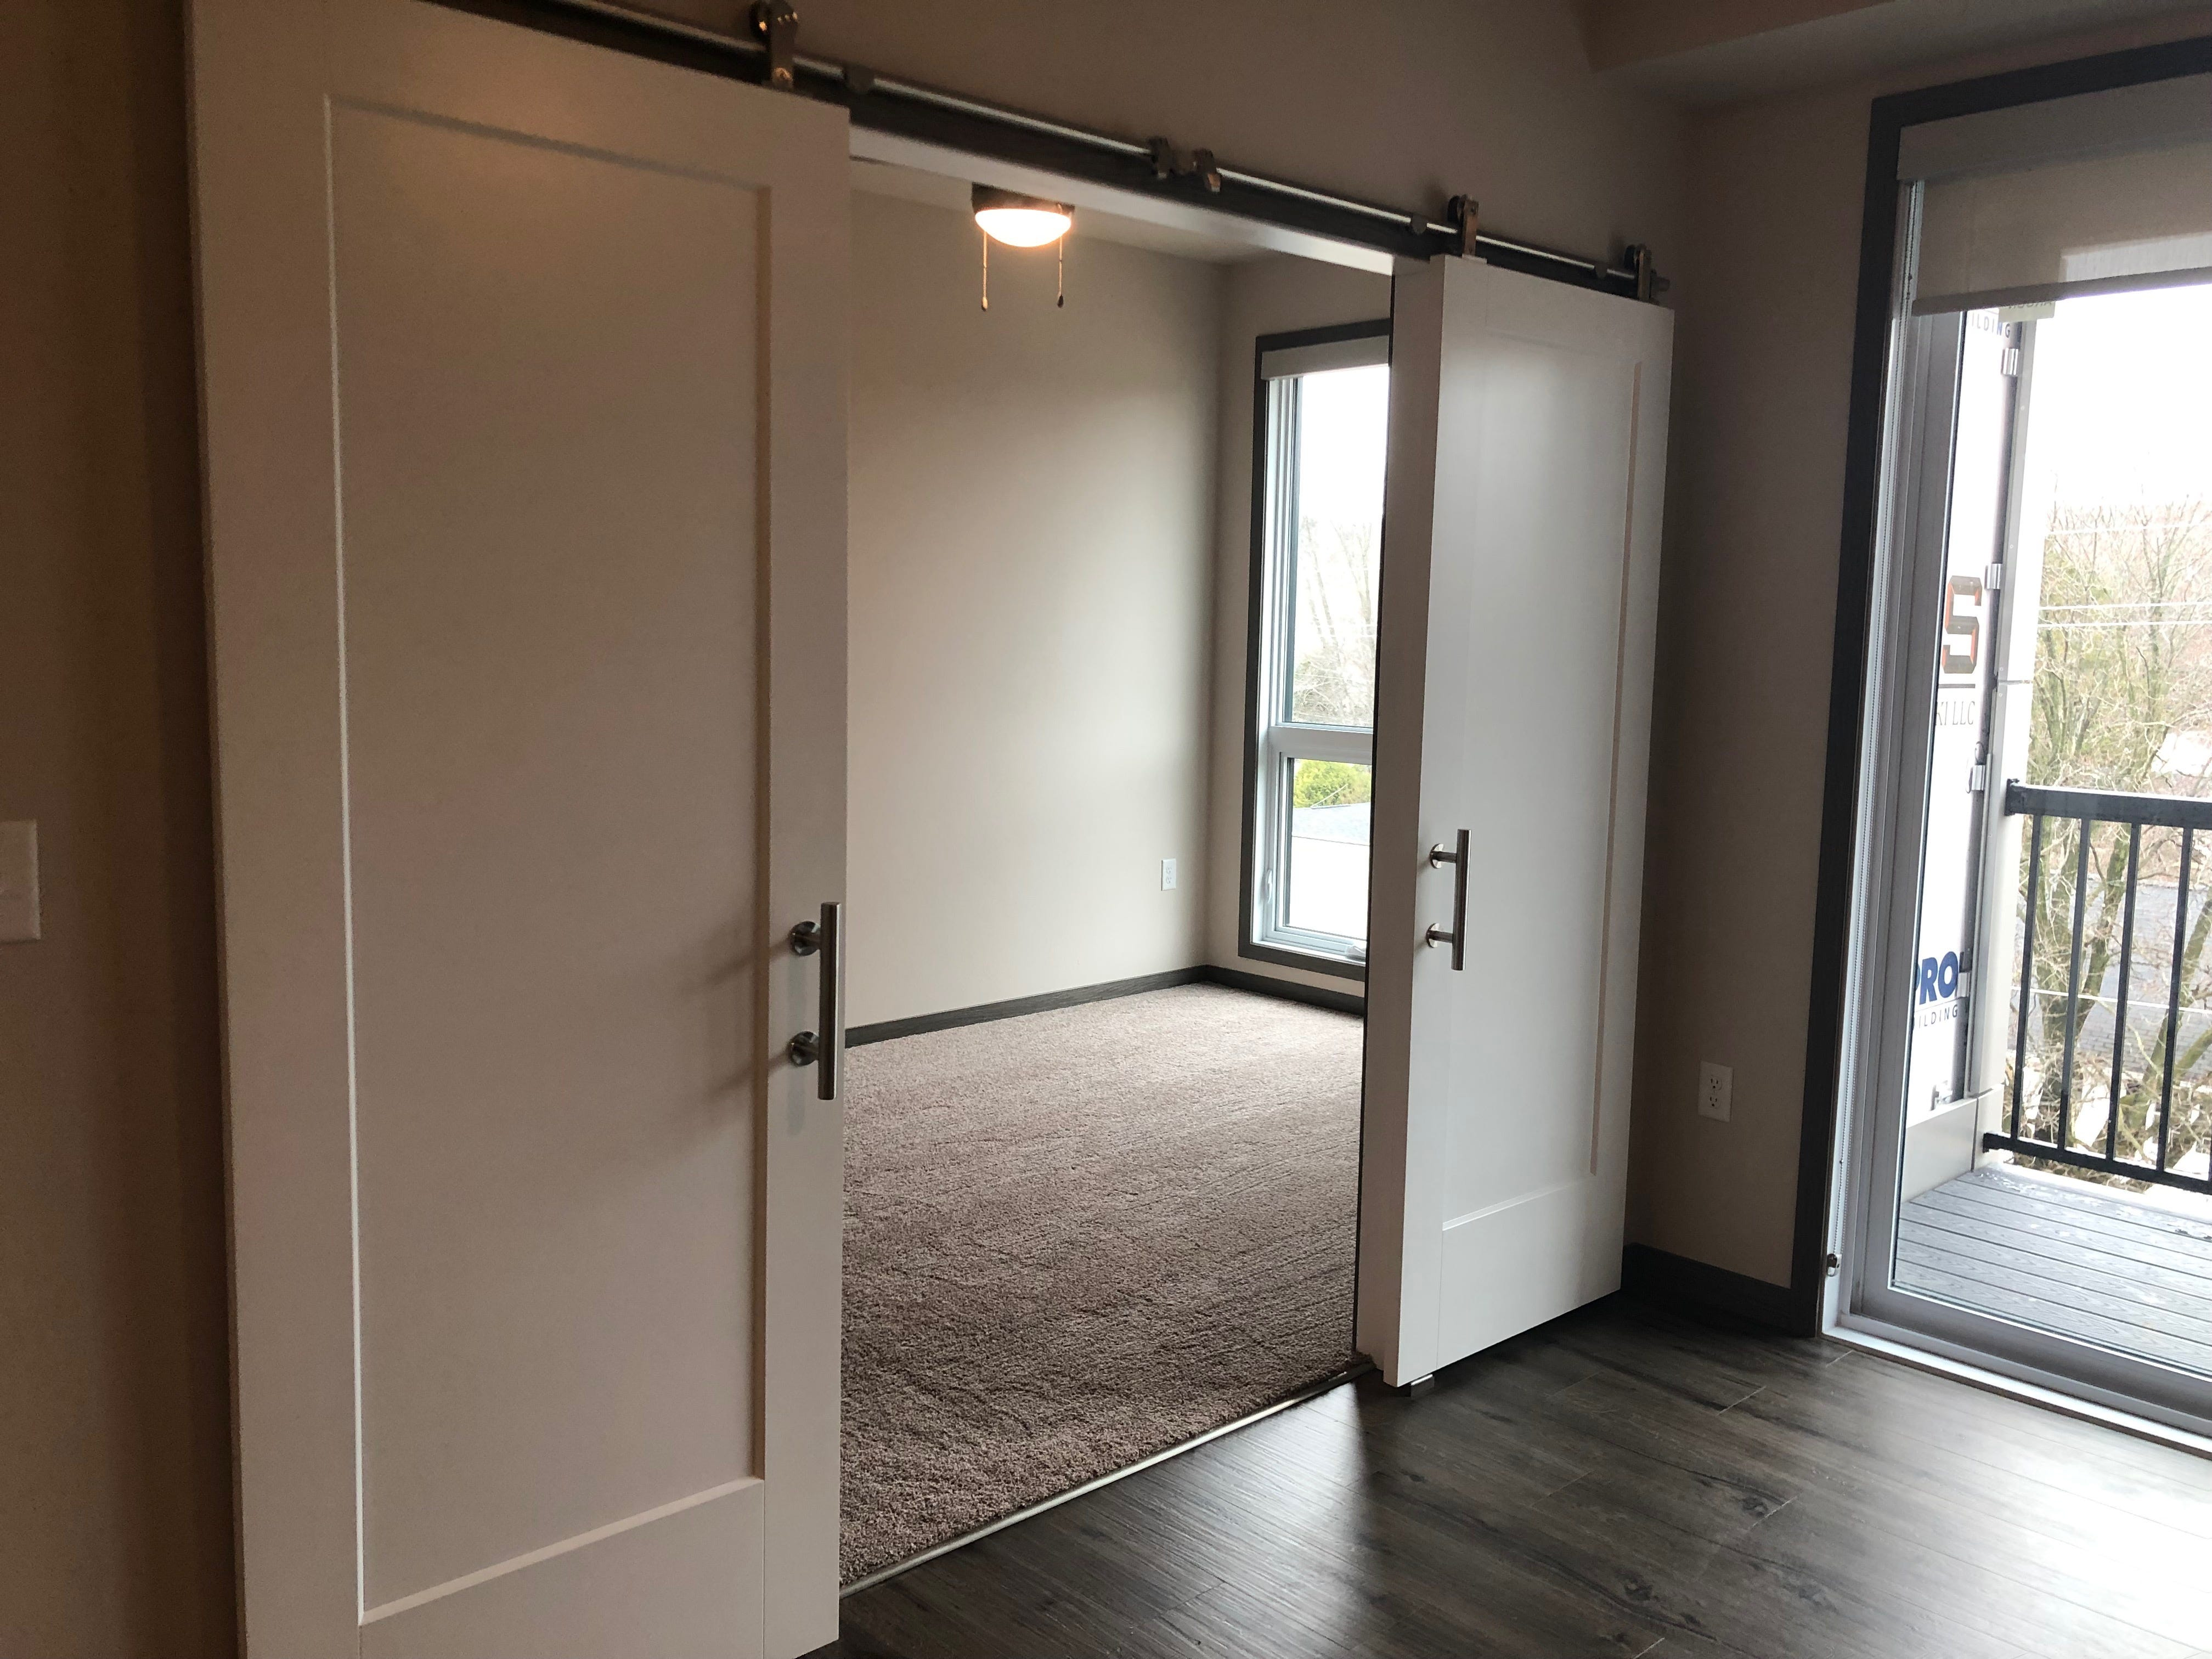 A studio apartment with a separated bedroom in the Urban West apartment complex.